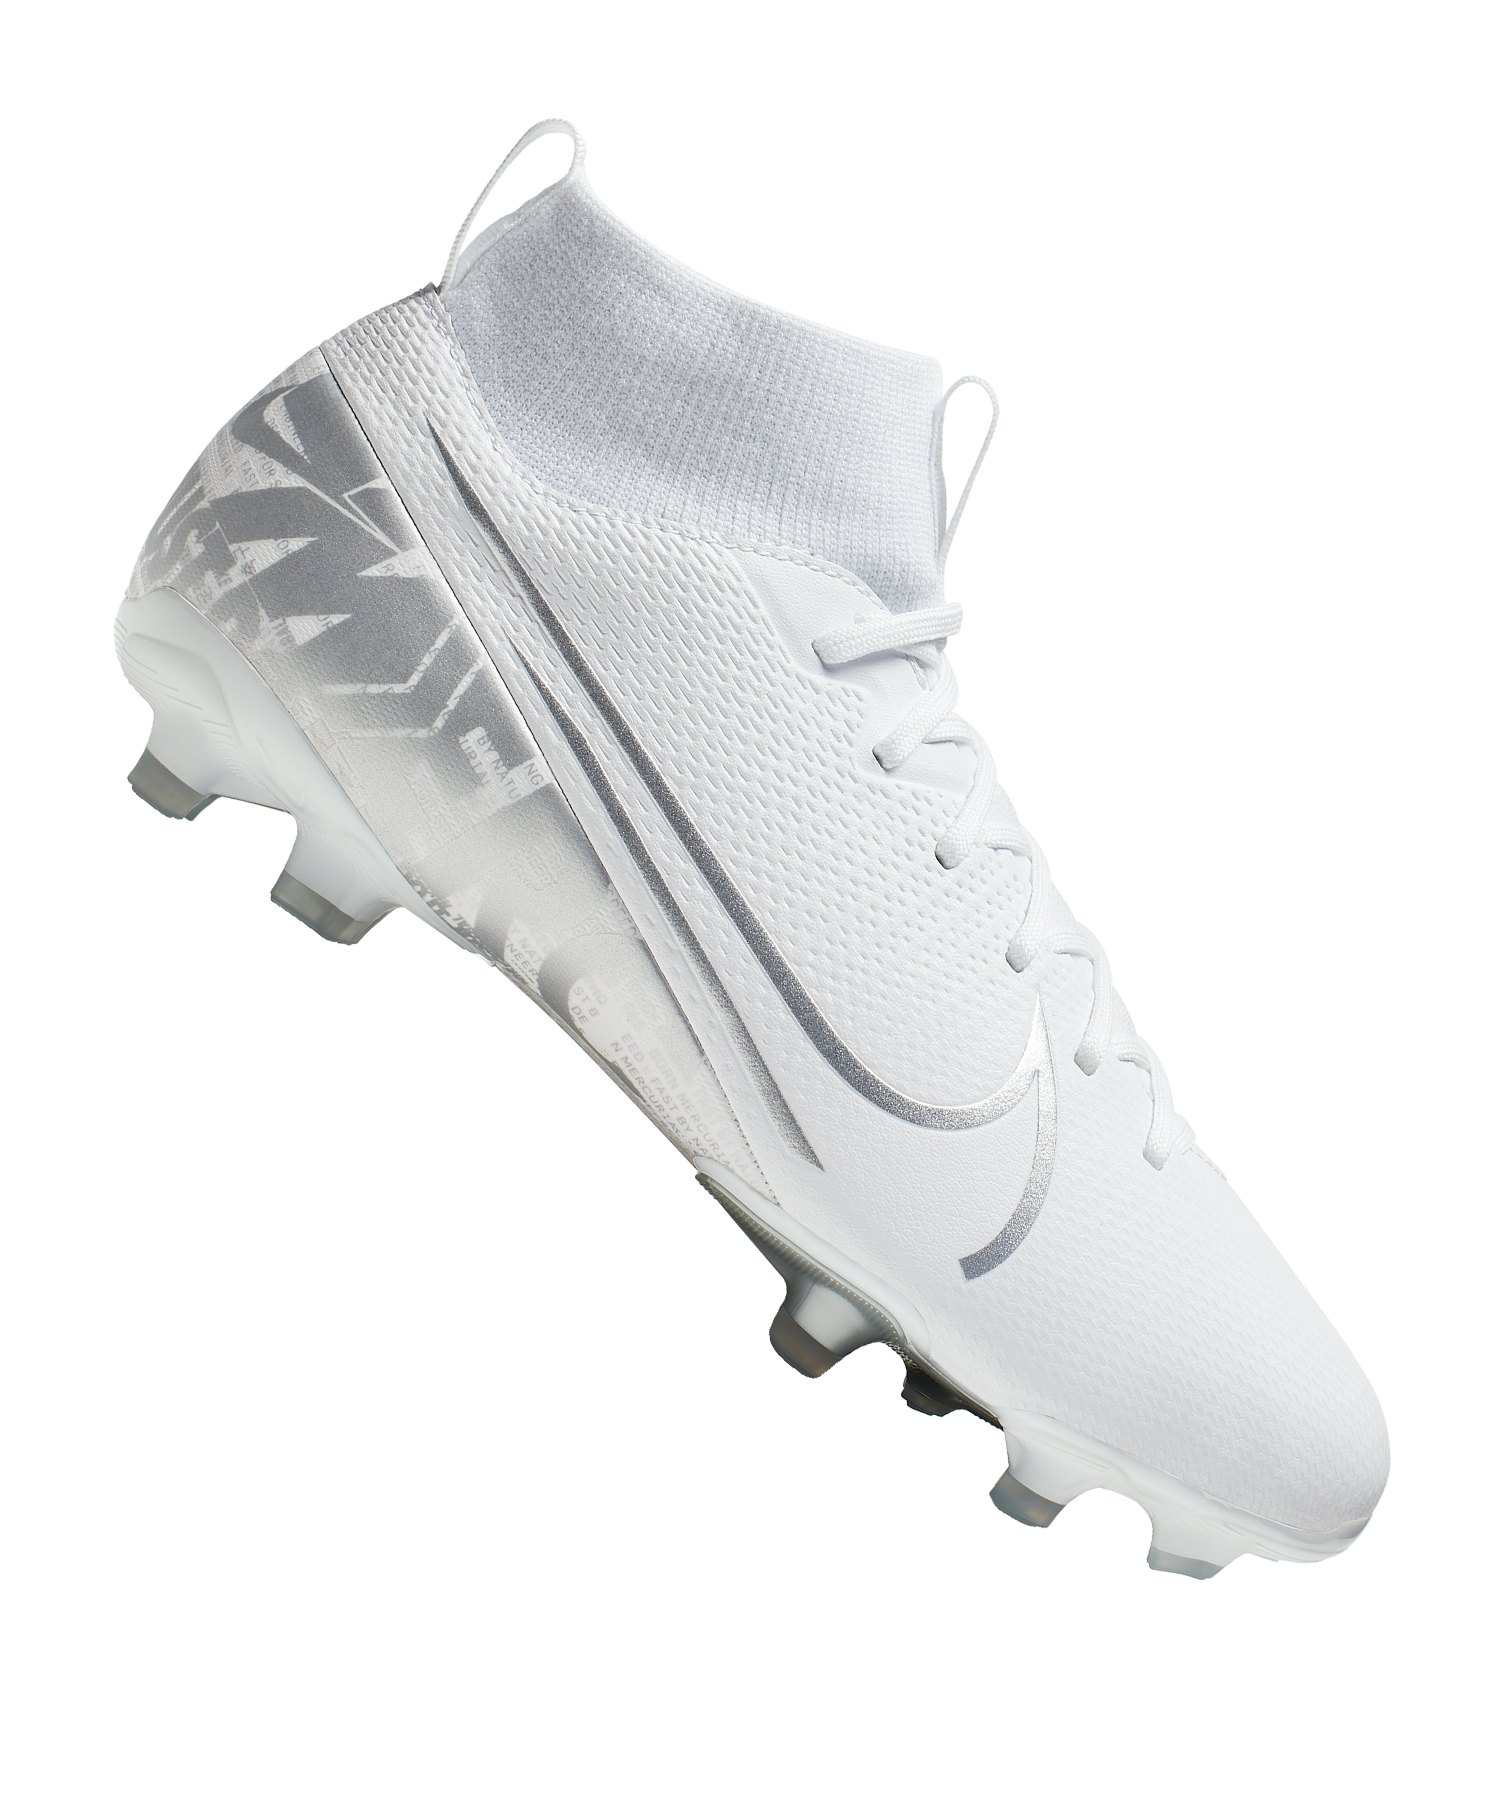 Nike Jr Mercurial Superfly VII Academy FG/MG Kids F100 - weiss